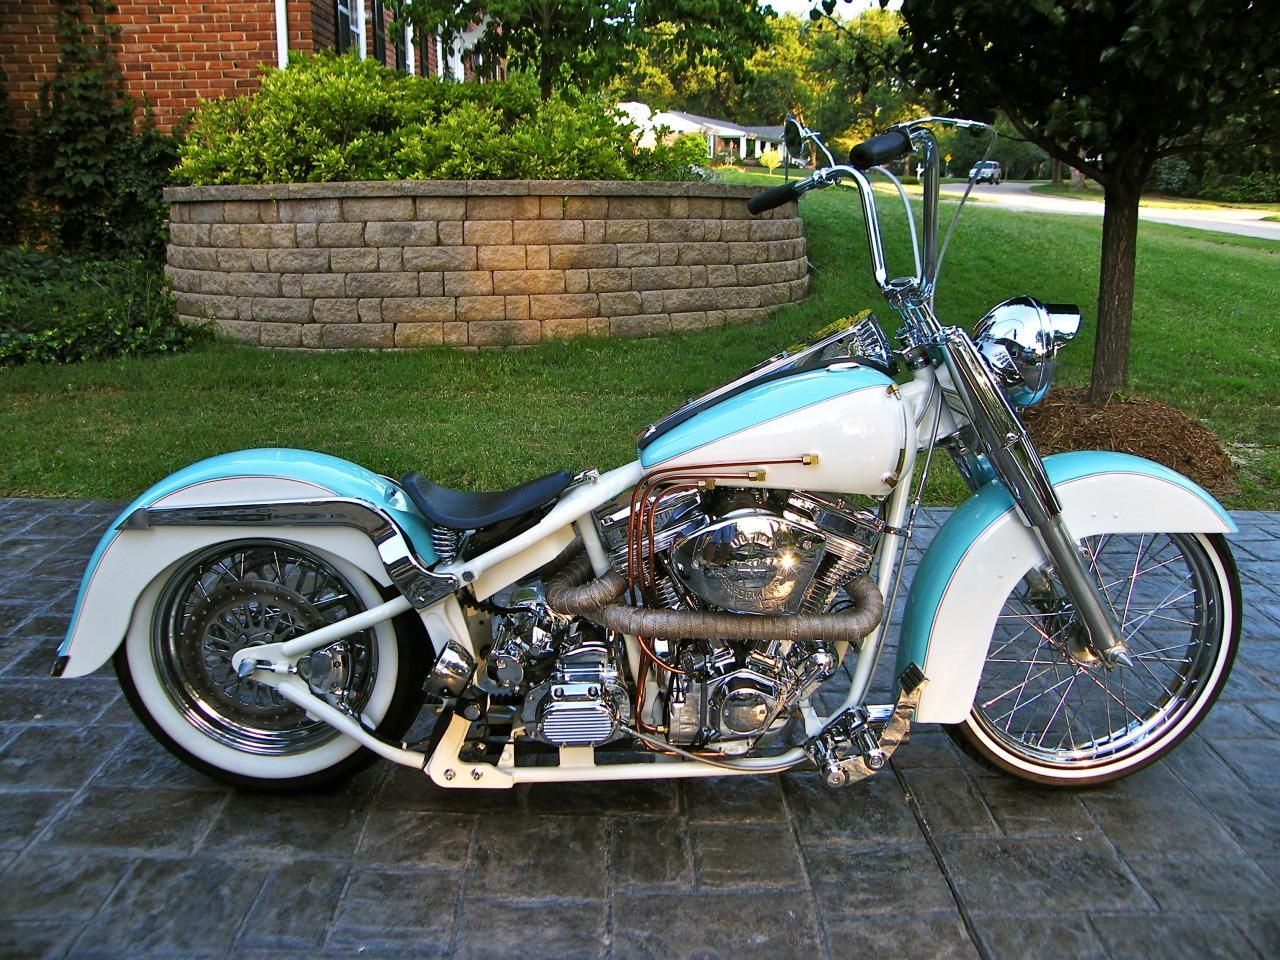 Rod S And Rides Built Malibu Cycle Works Custom Softail